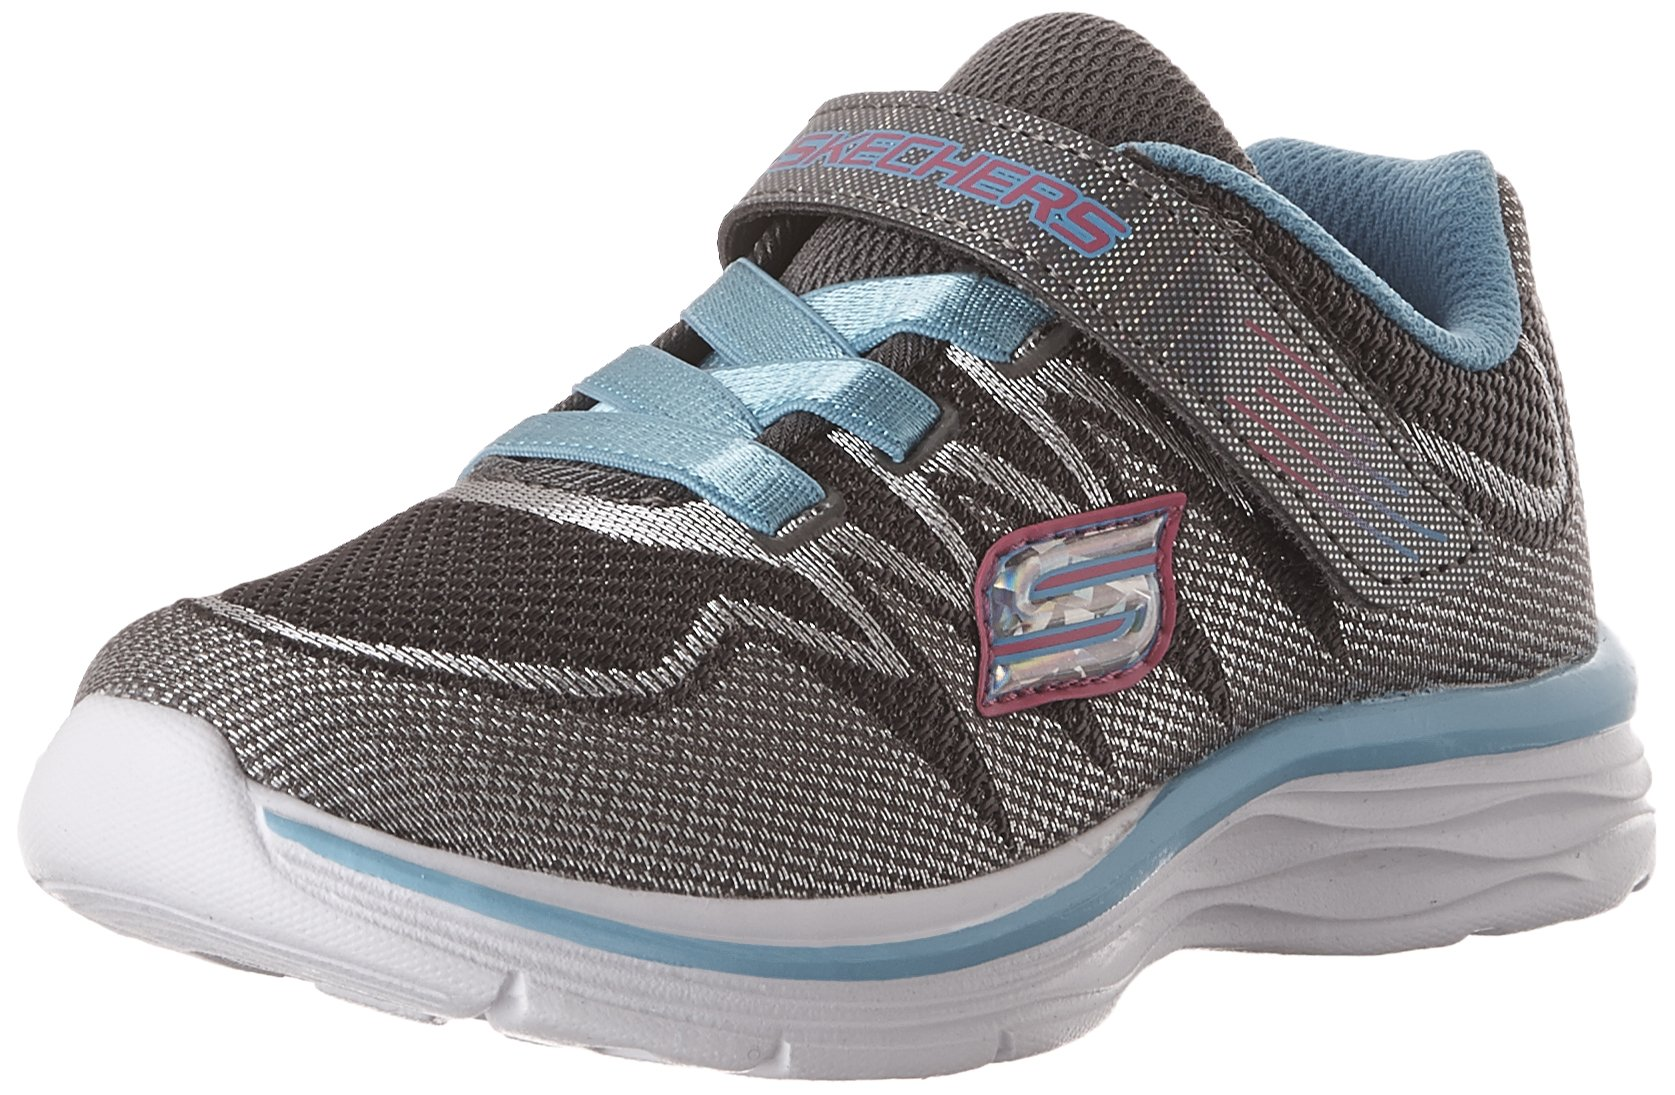 Skechers Dream N Dash Whimsy Girl Sneakers Charcoal/Turquoise 3